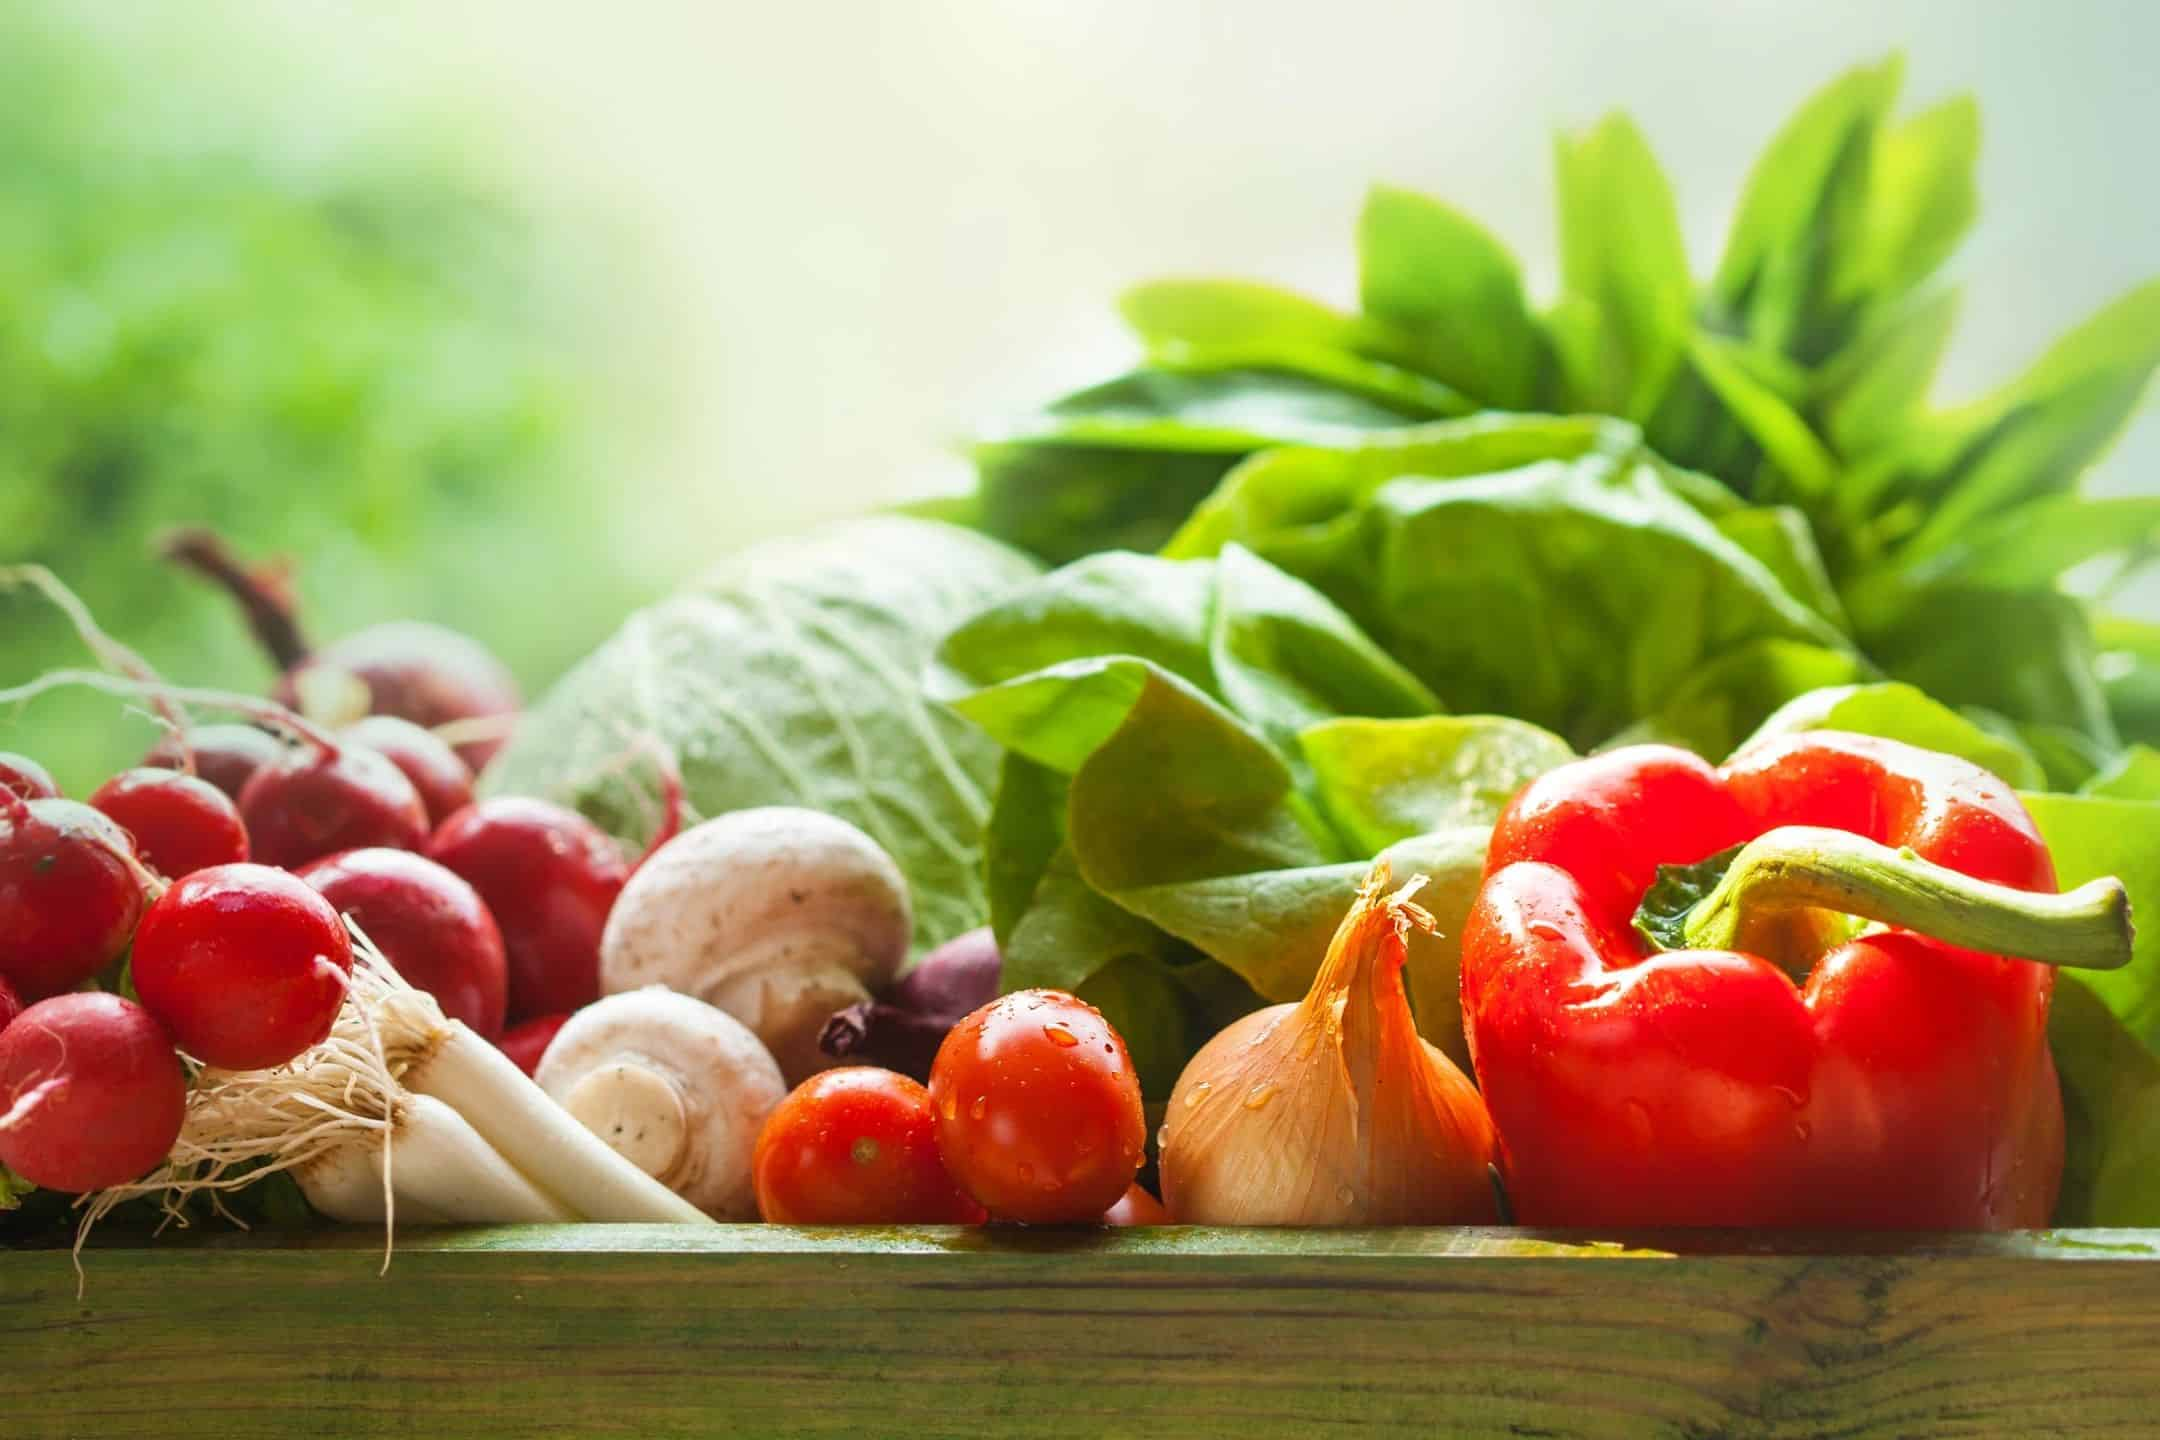 Healthy Nutrition Base On Science